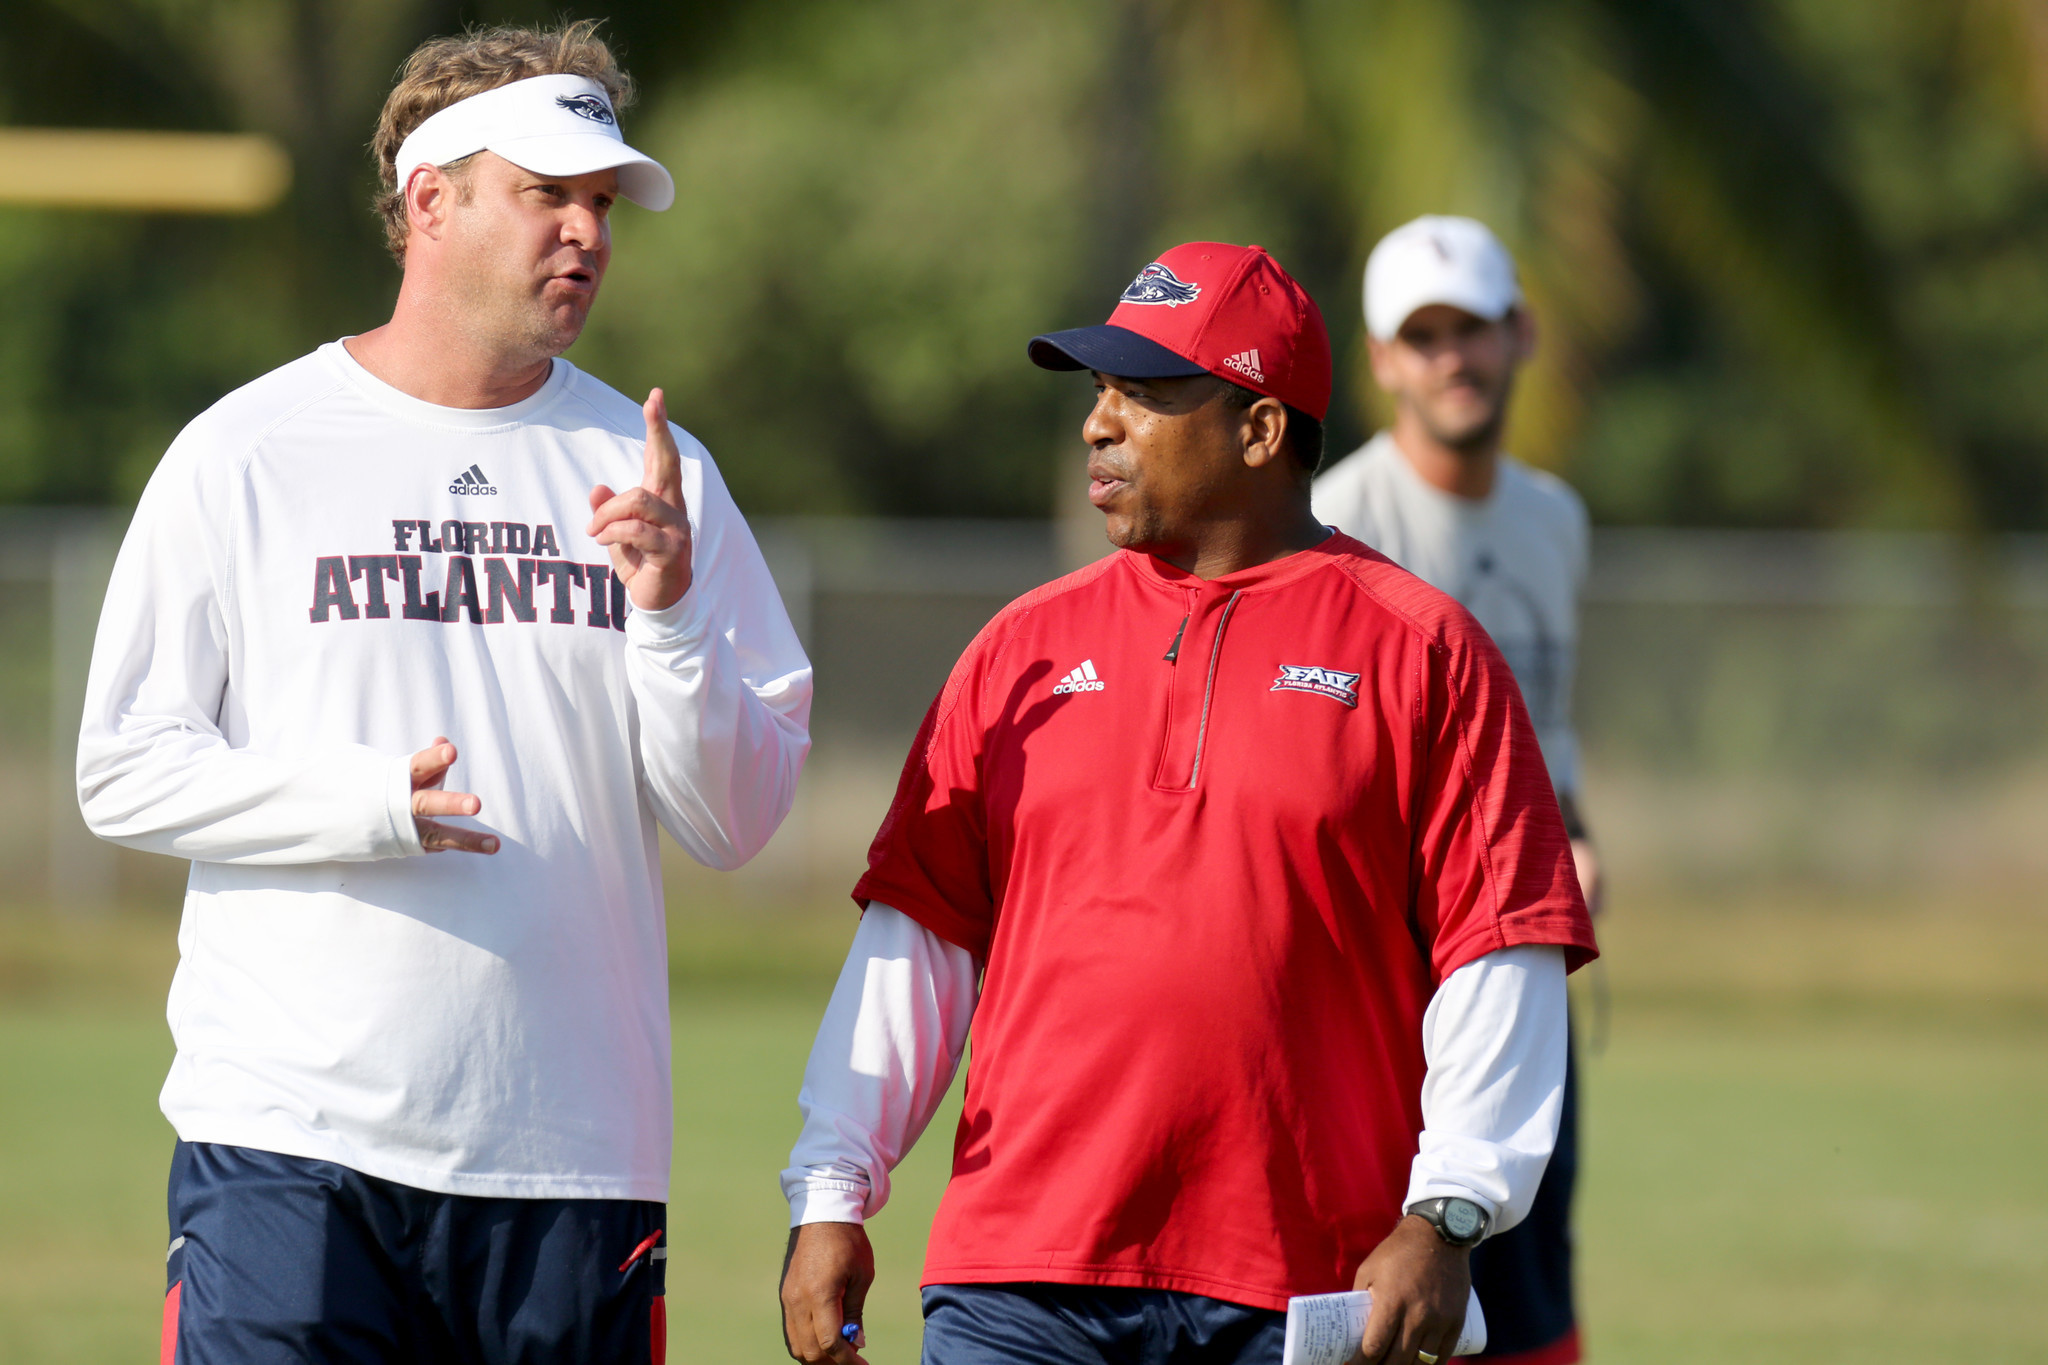 fau s lane kiffin not really big on humiliating the assistant